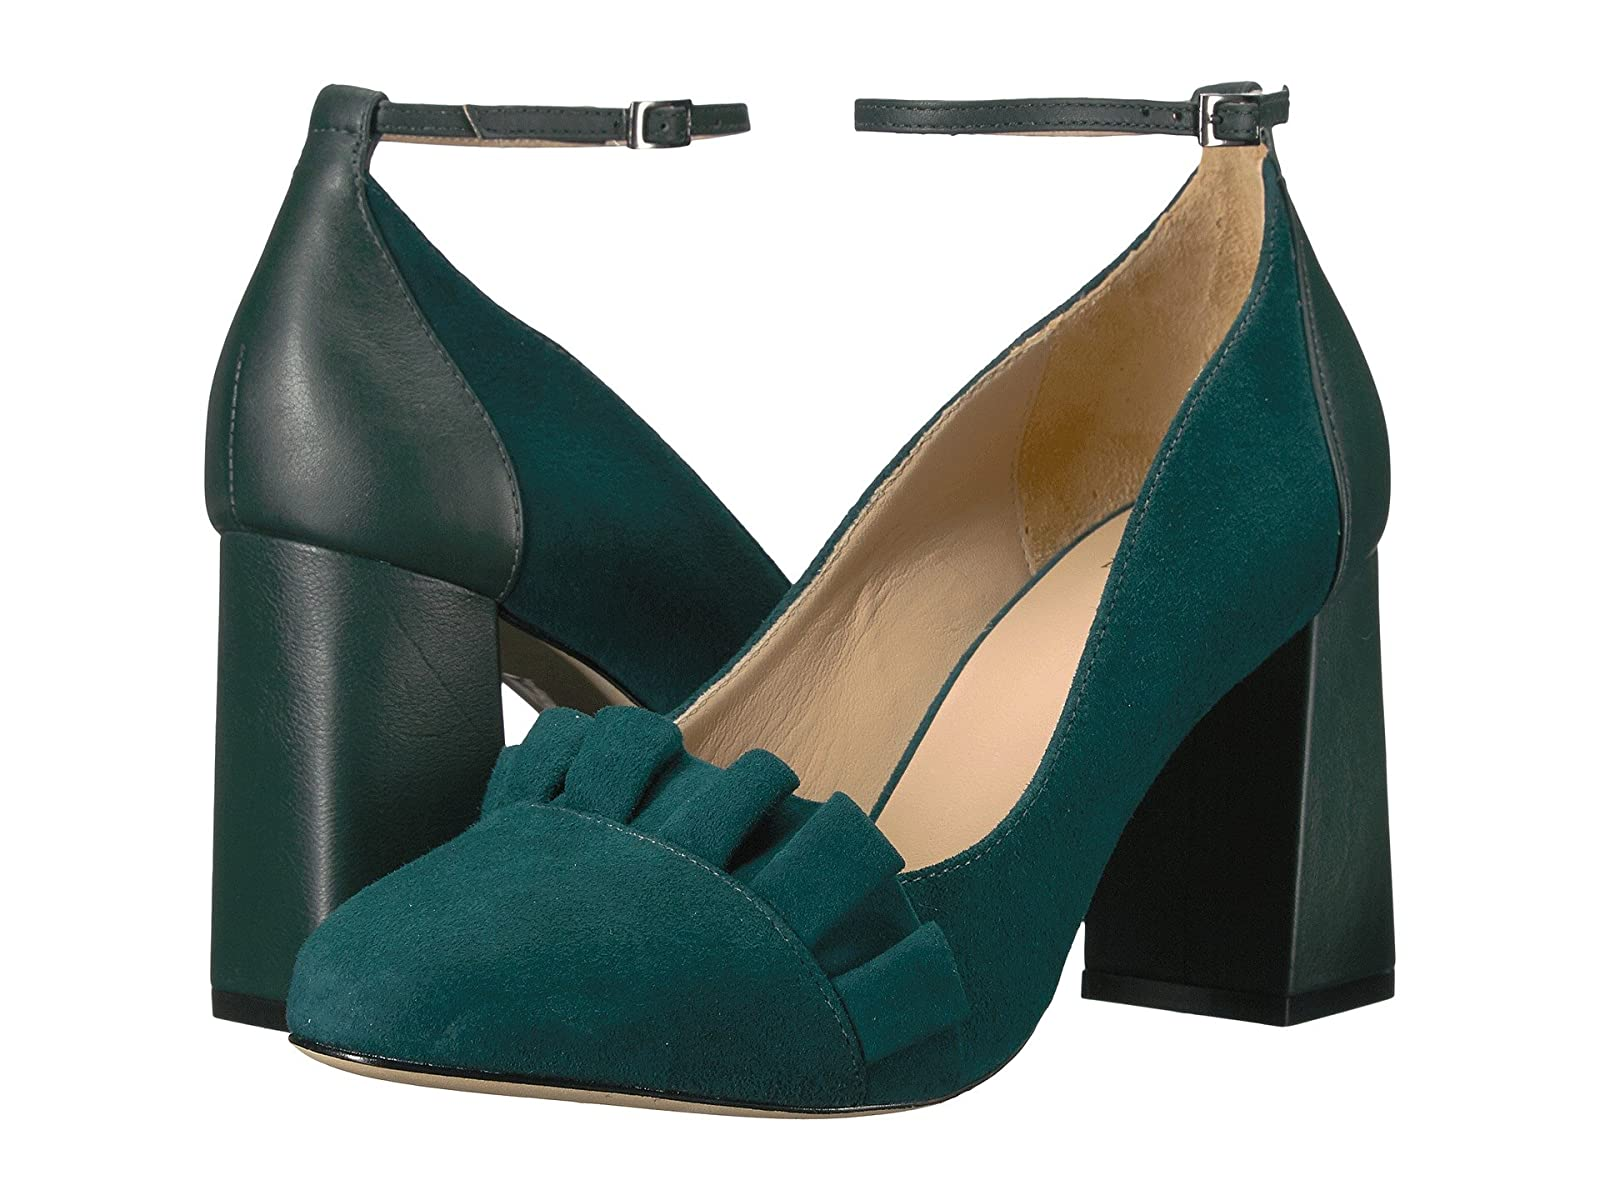 ZAC Zac Posen FeliciaCheap and distinctive eye-catching shoes